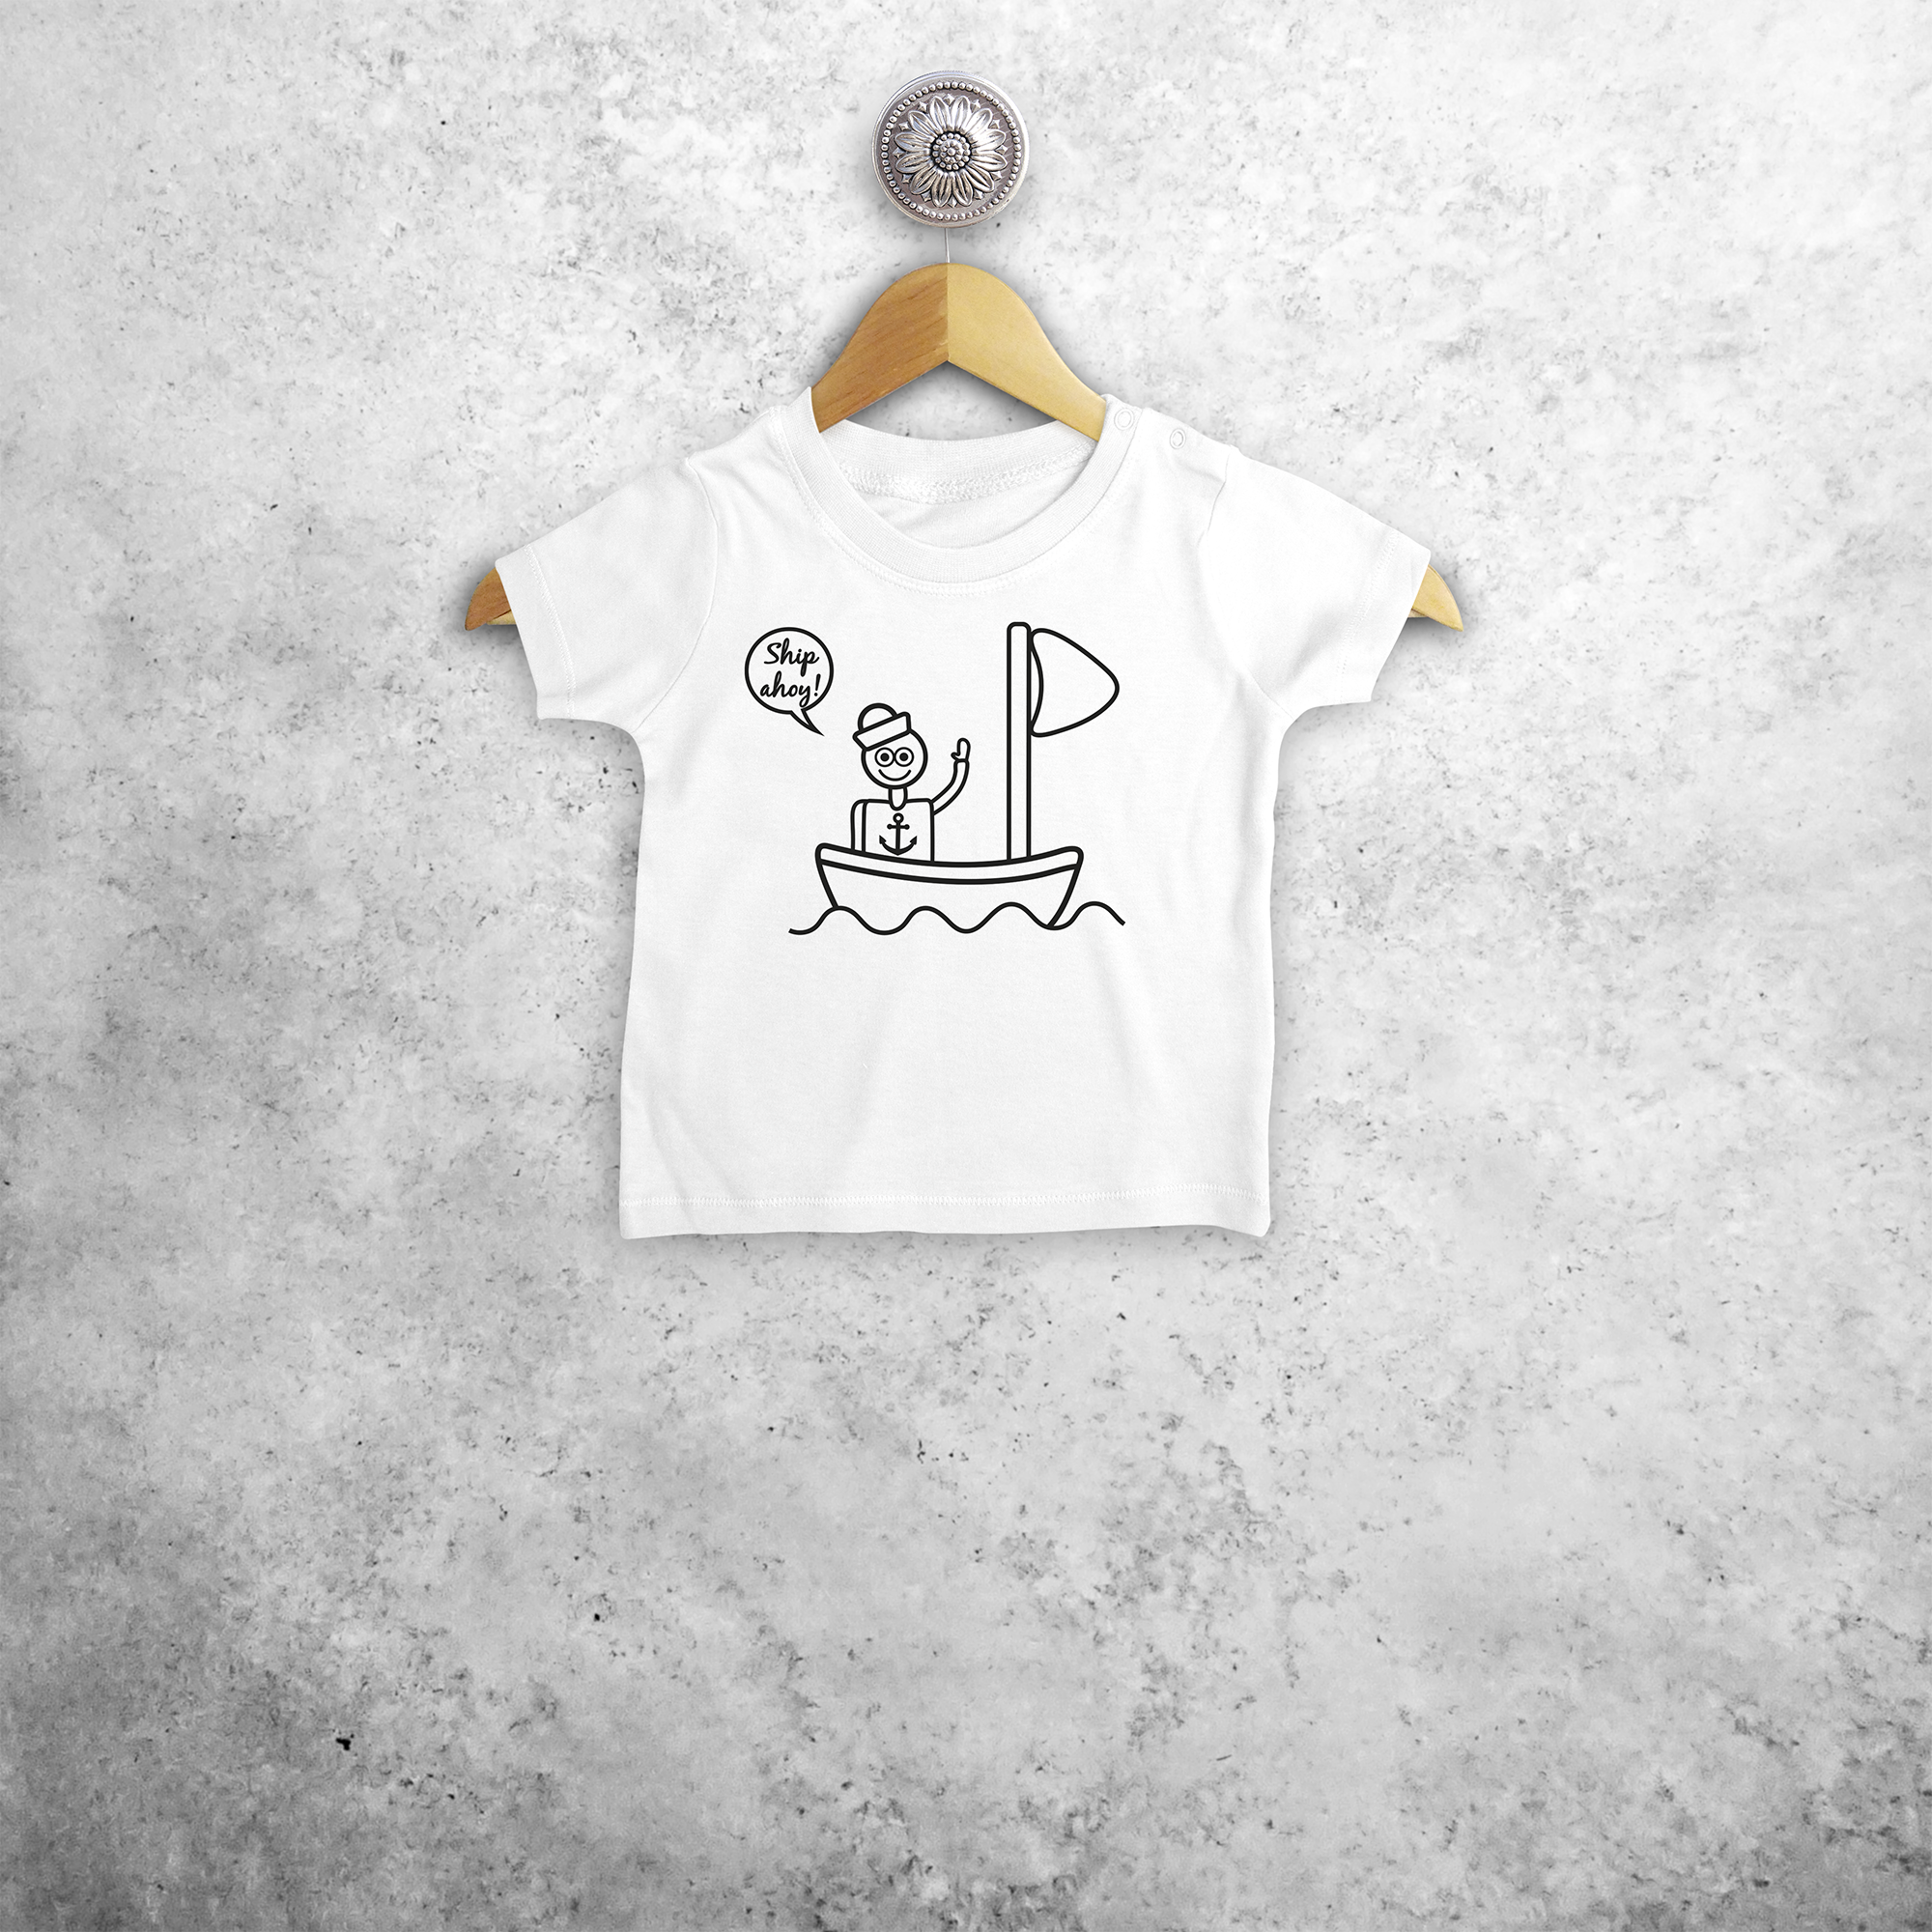 Sailor baby shortsleeve shirt